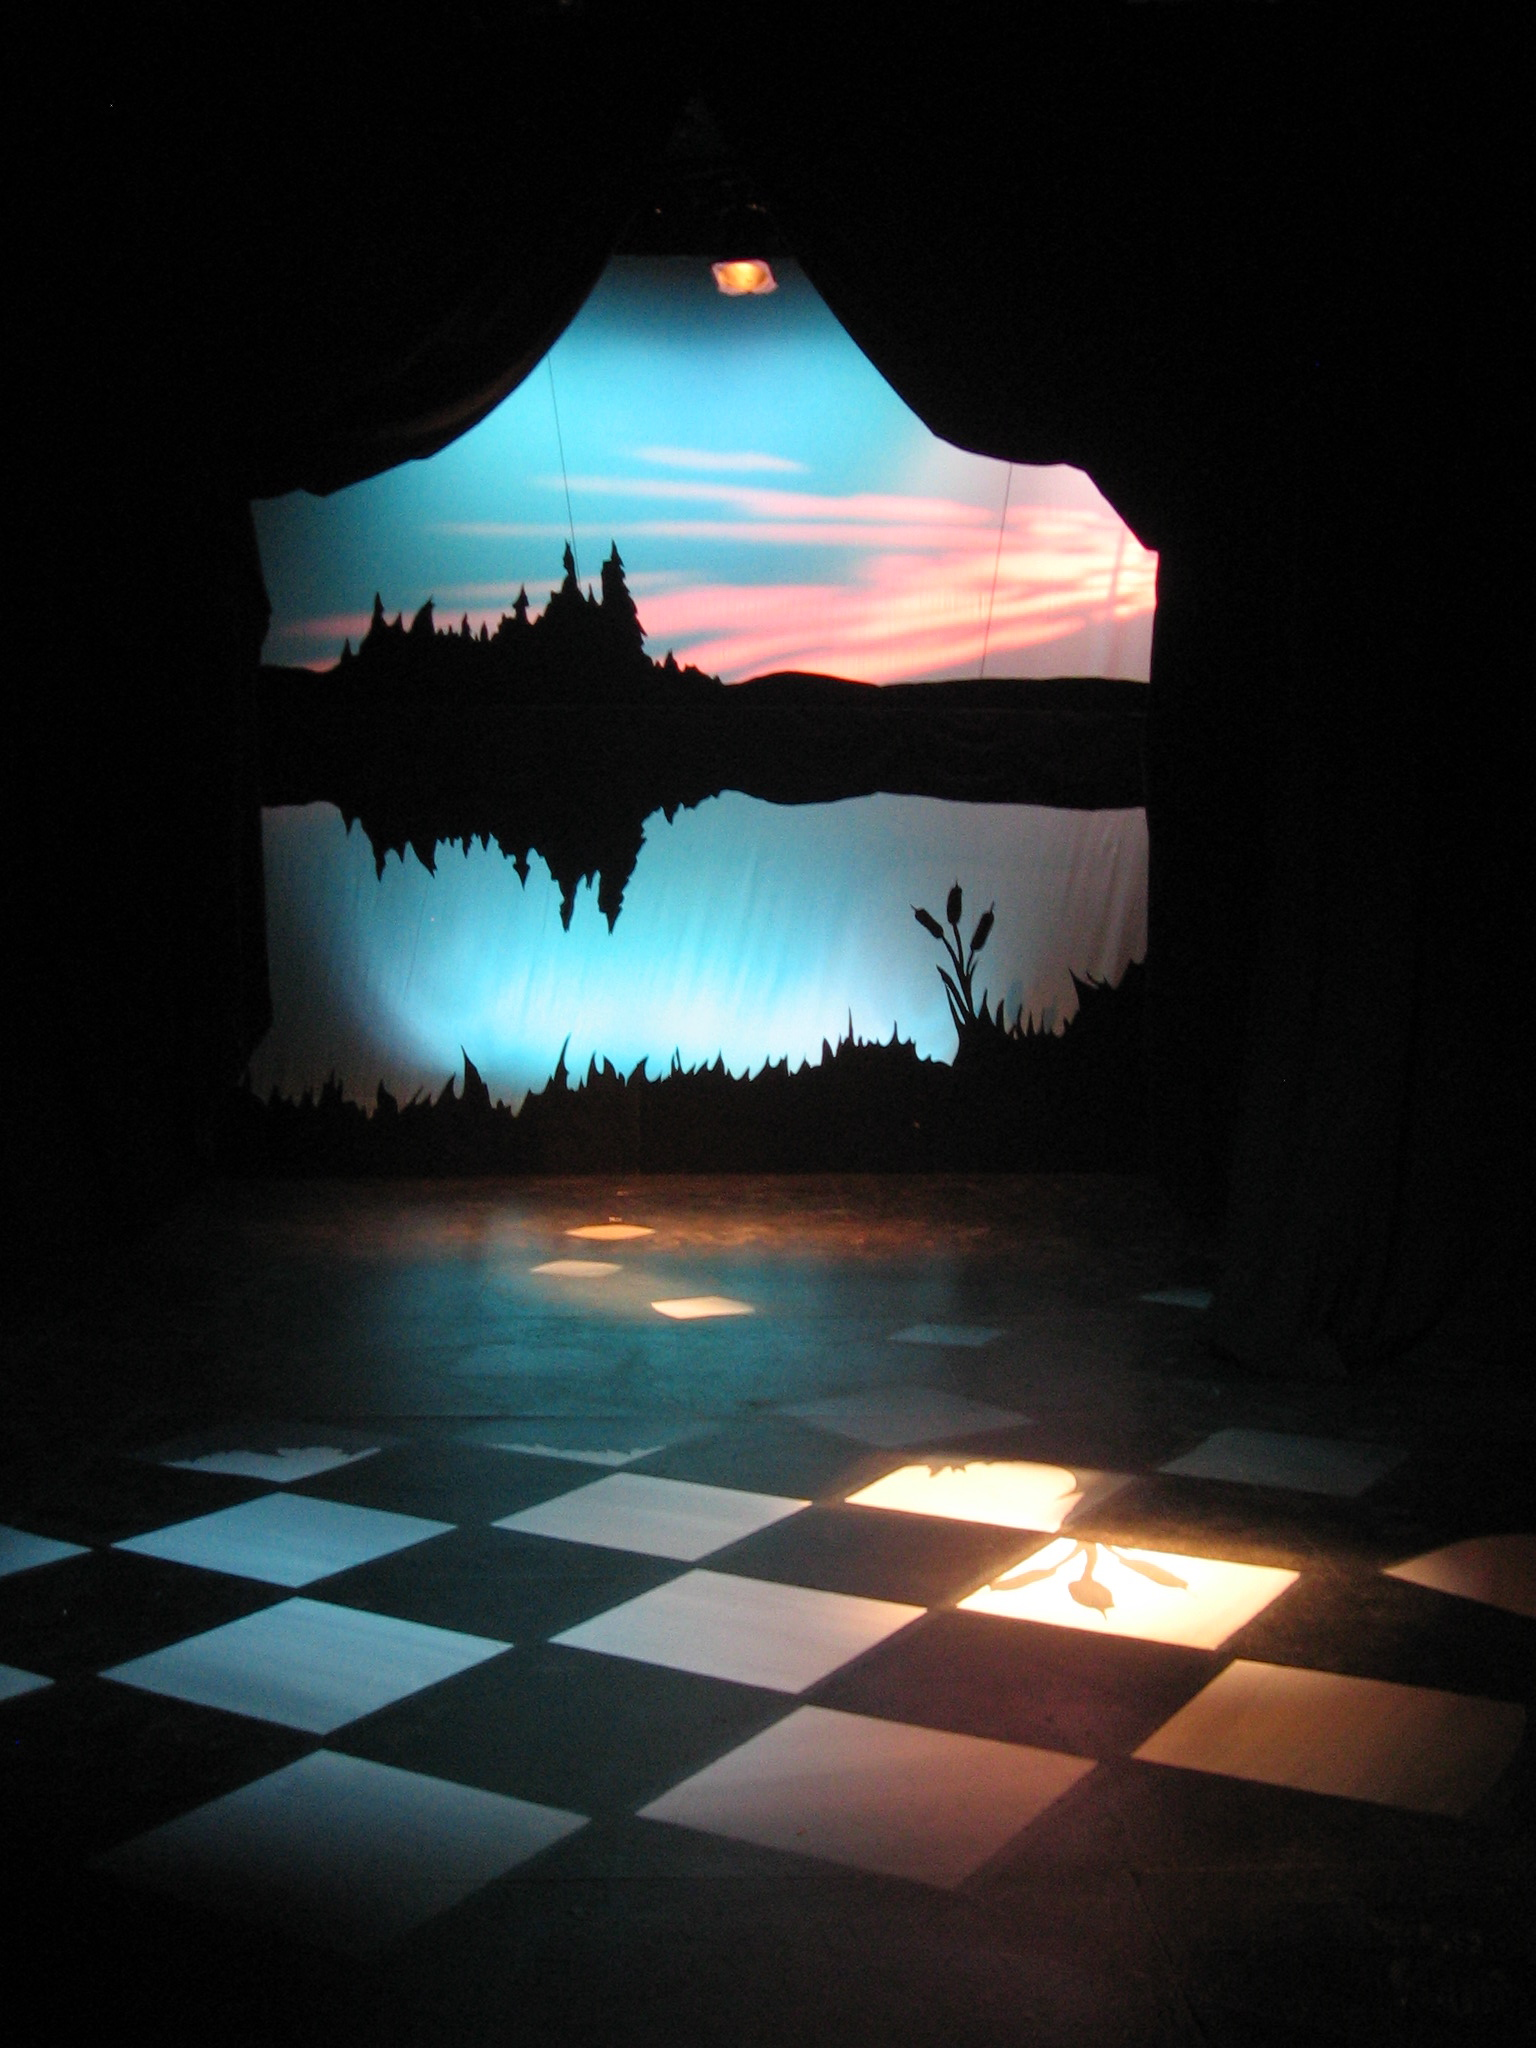 For The Pleasure of Seeing Her Again - Rosebud Theatre/Leapkrog Productions